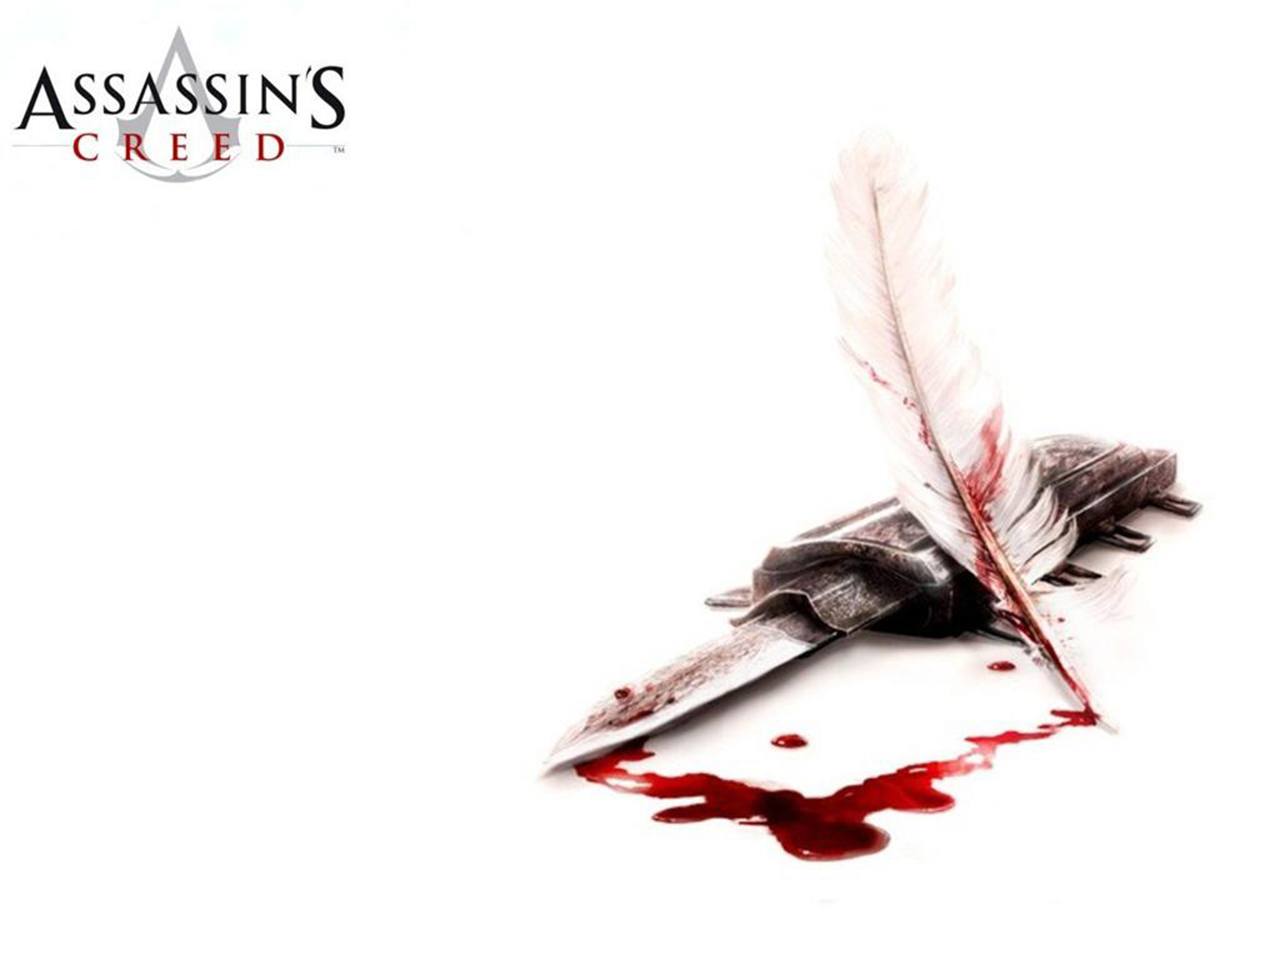 Image assassins creed hd wallpapers 5g assassins creed wiki assassins creed hd wallpapers 5g voltagebd Image collections